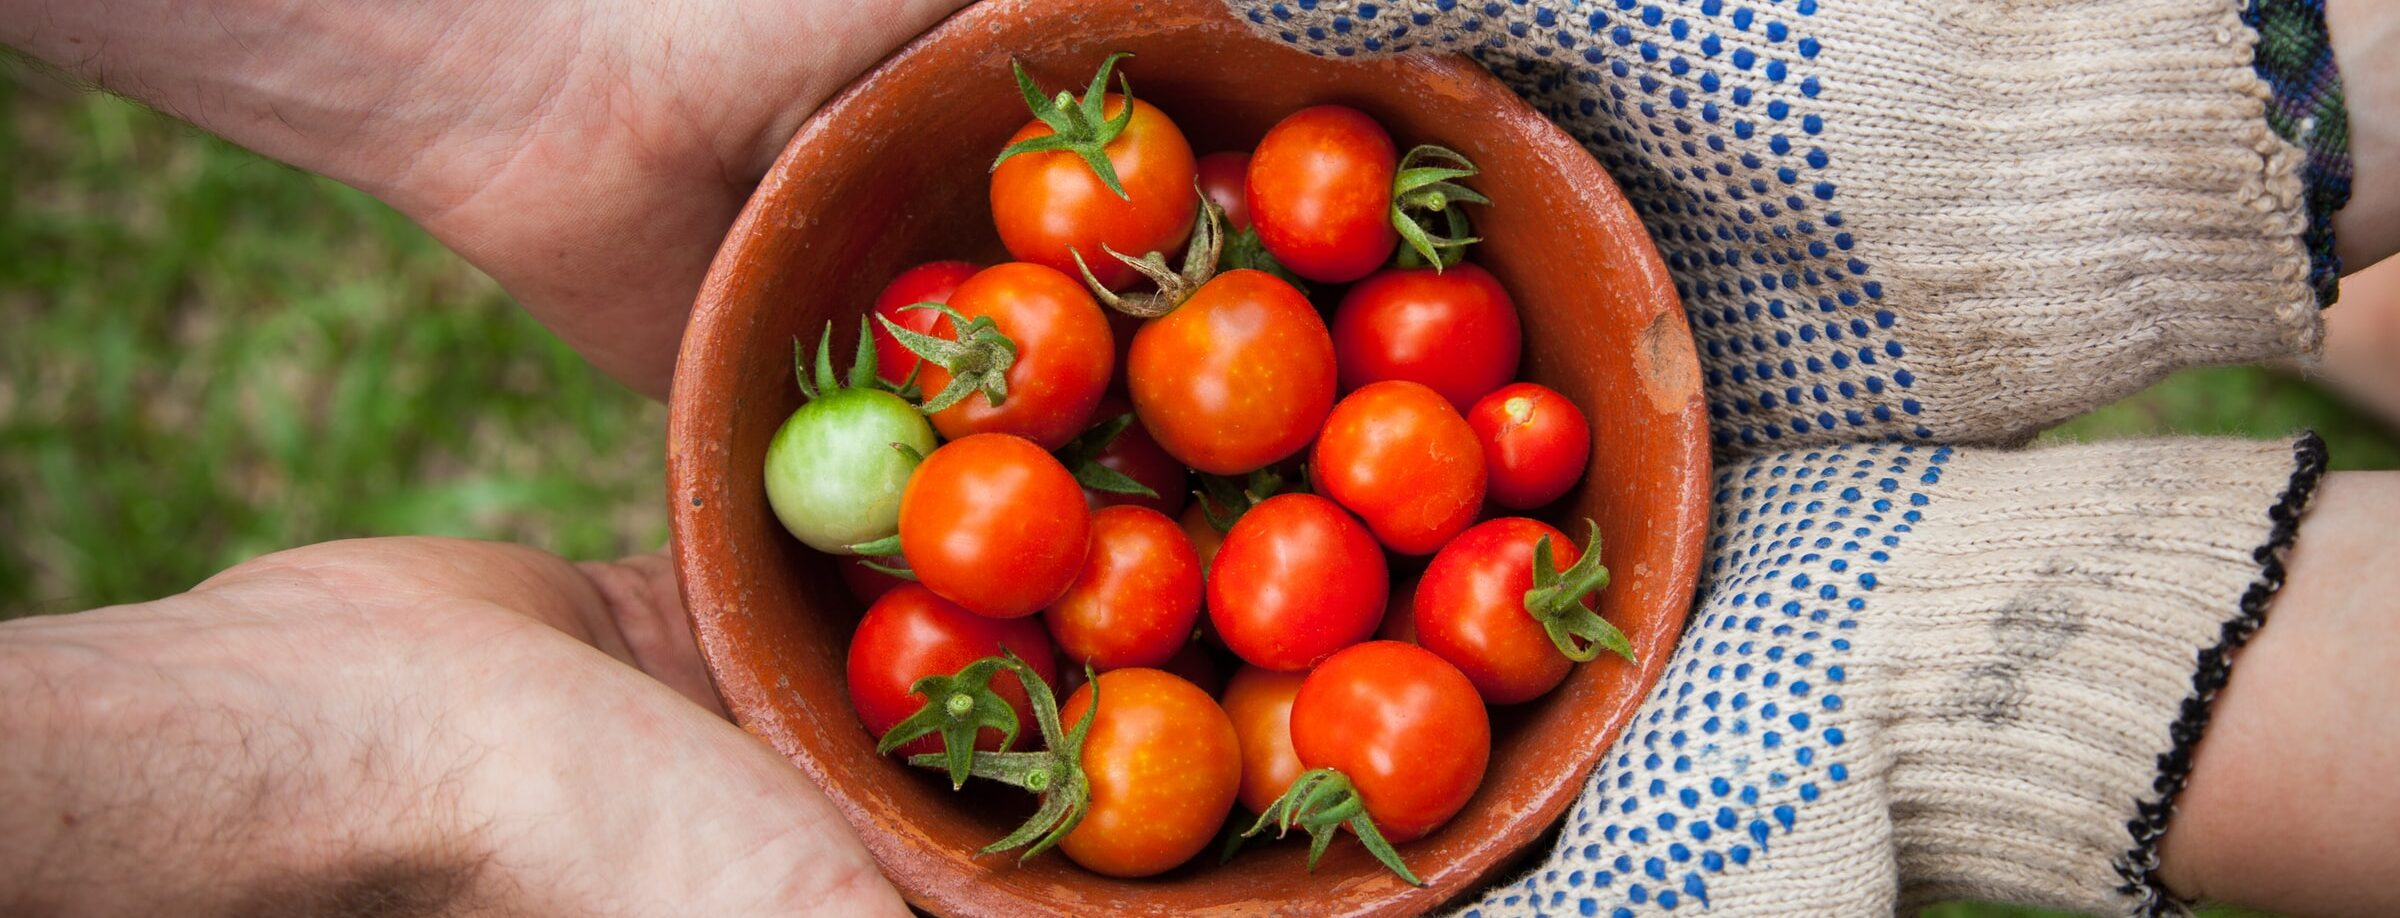 tomatoes in a bowl being held by community